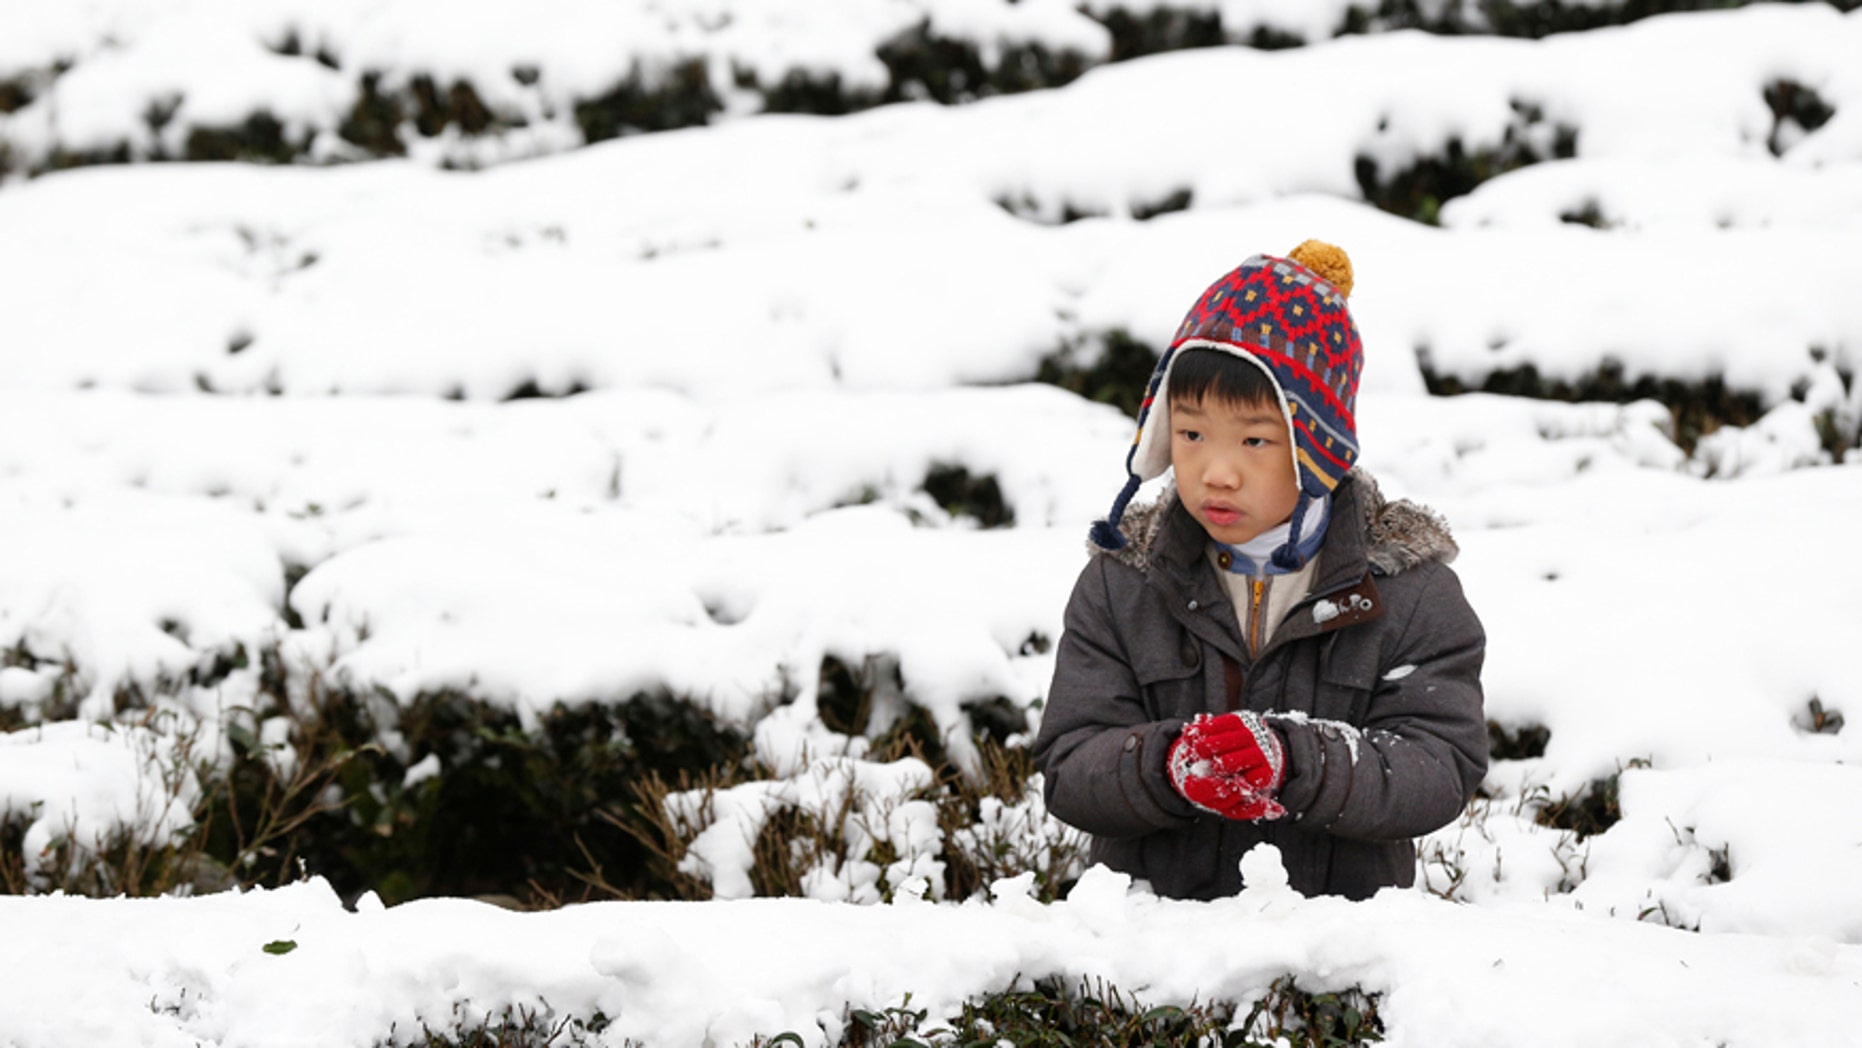 Jan. 25, 2016: A young boy visits a snow-covered tea plantation in the Pinglin mountain area of New Taipei City, Taiwan.